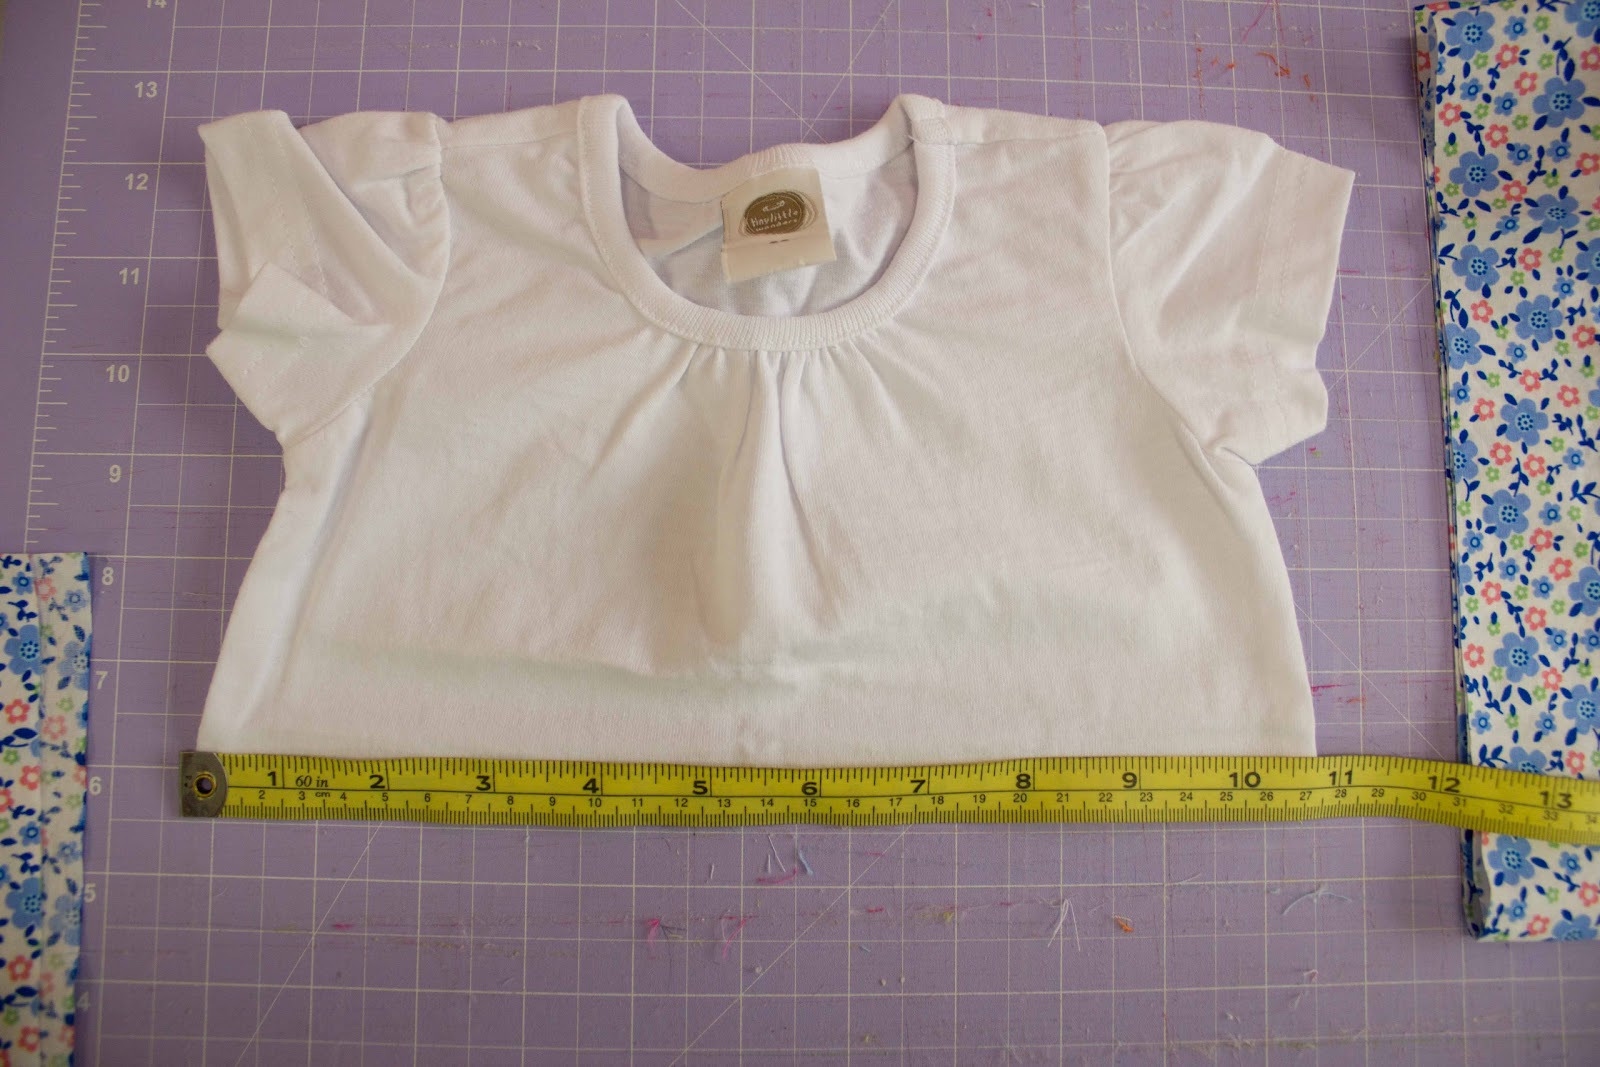 Model 10 Free Woman39s TShirt Upcycled To Dress Patterns Amp Tutorials  Fab